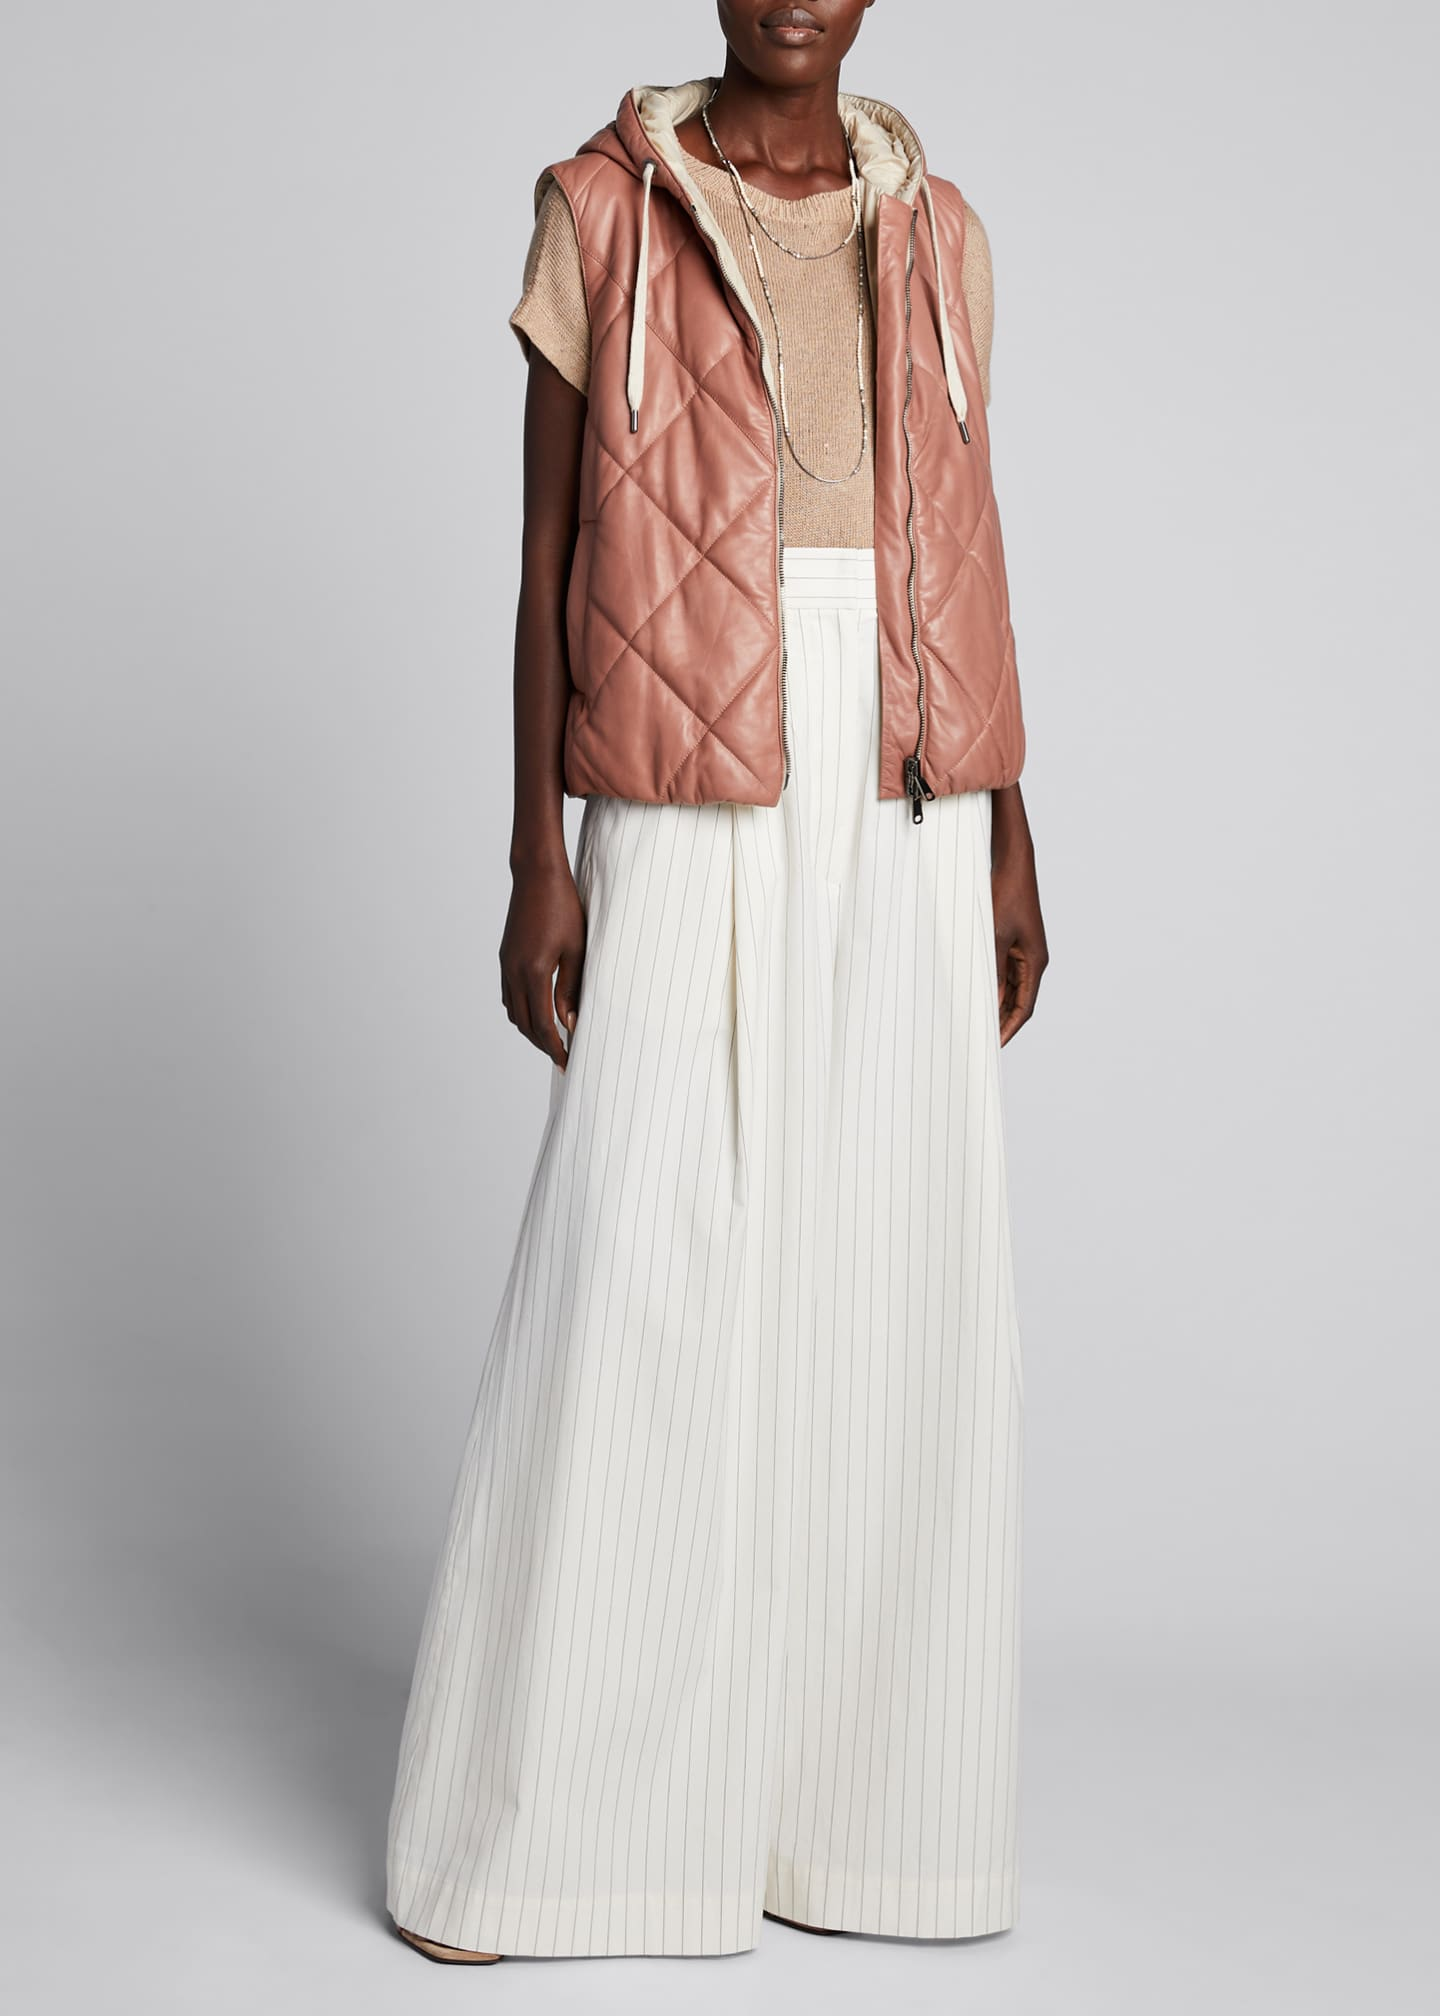 Brunello Cucinelli Quilted Leather Hooded Vest